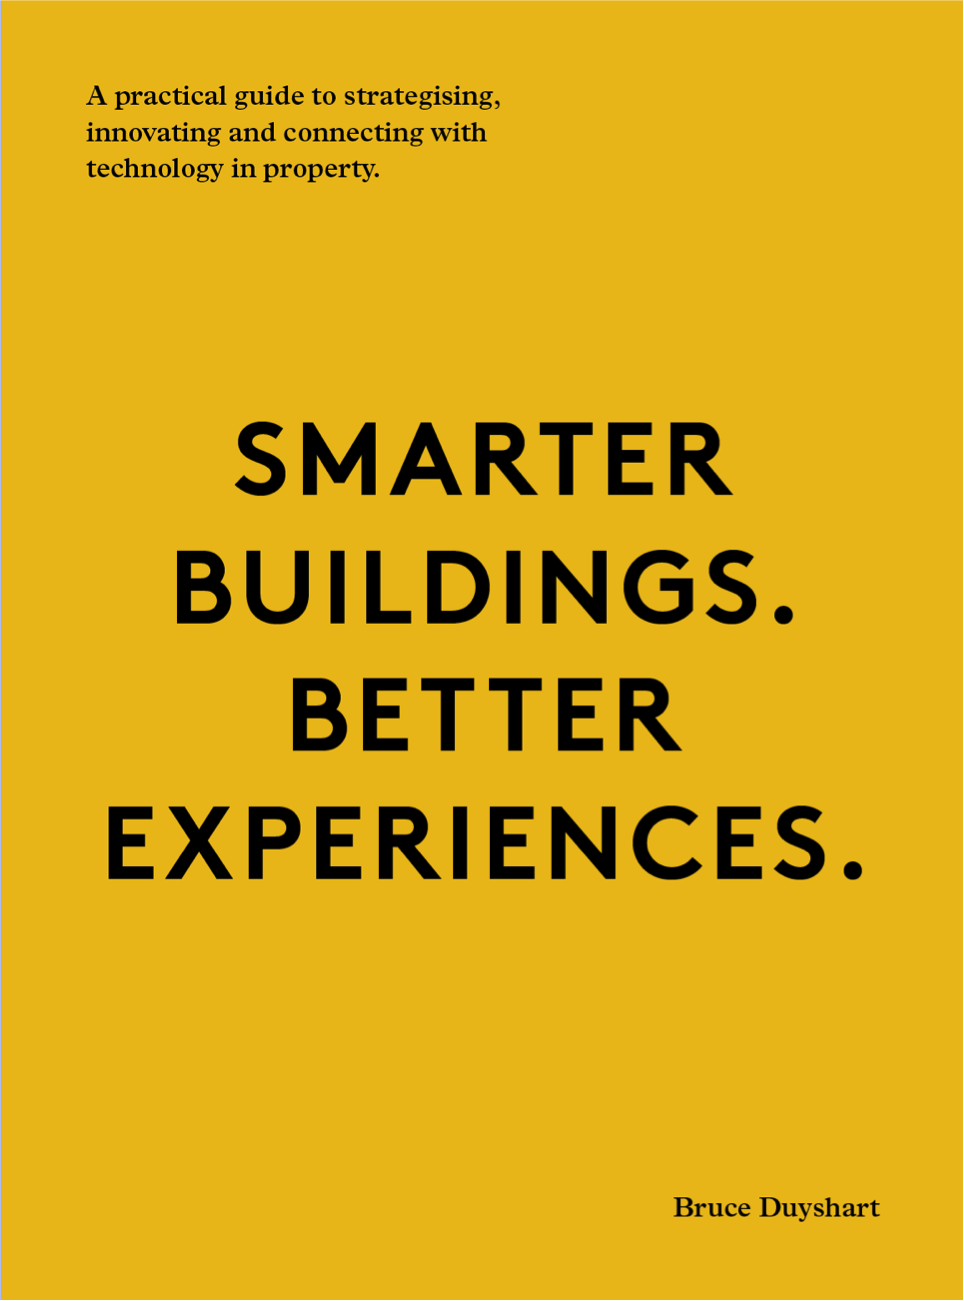 Smarter Buildings. Better Experiences.